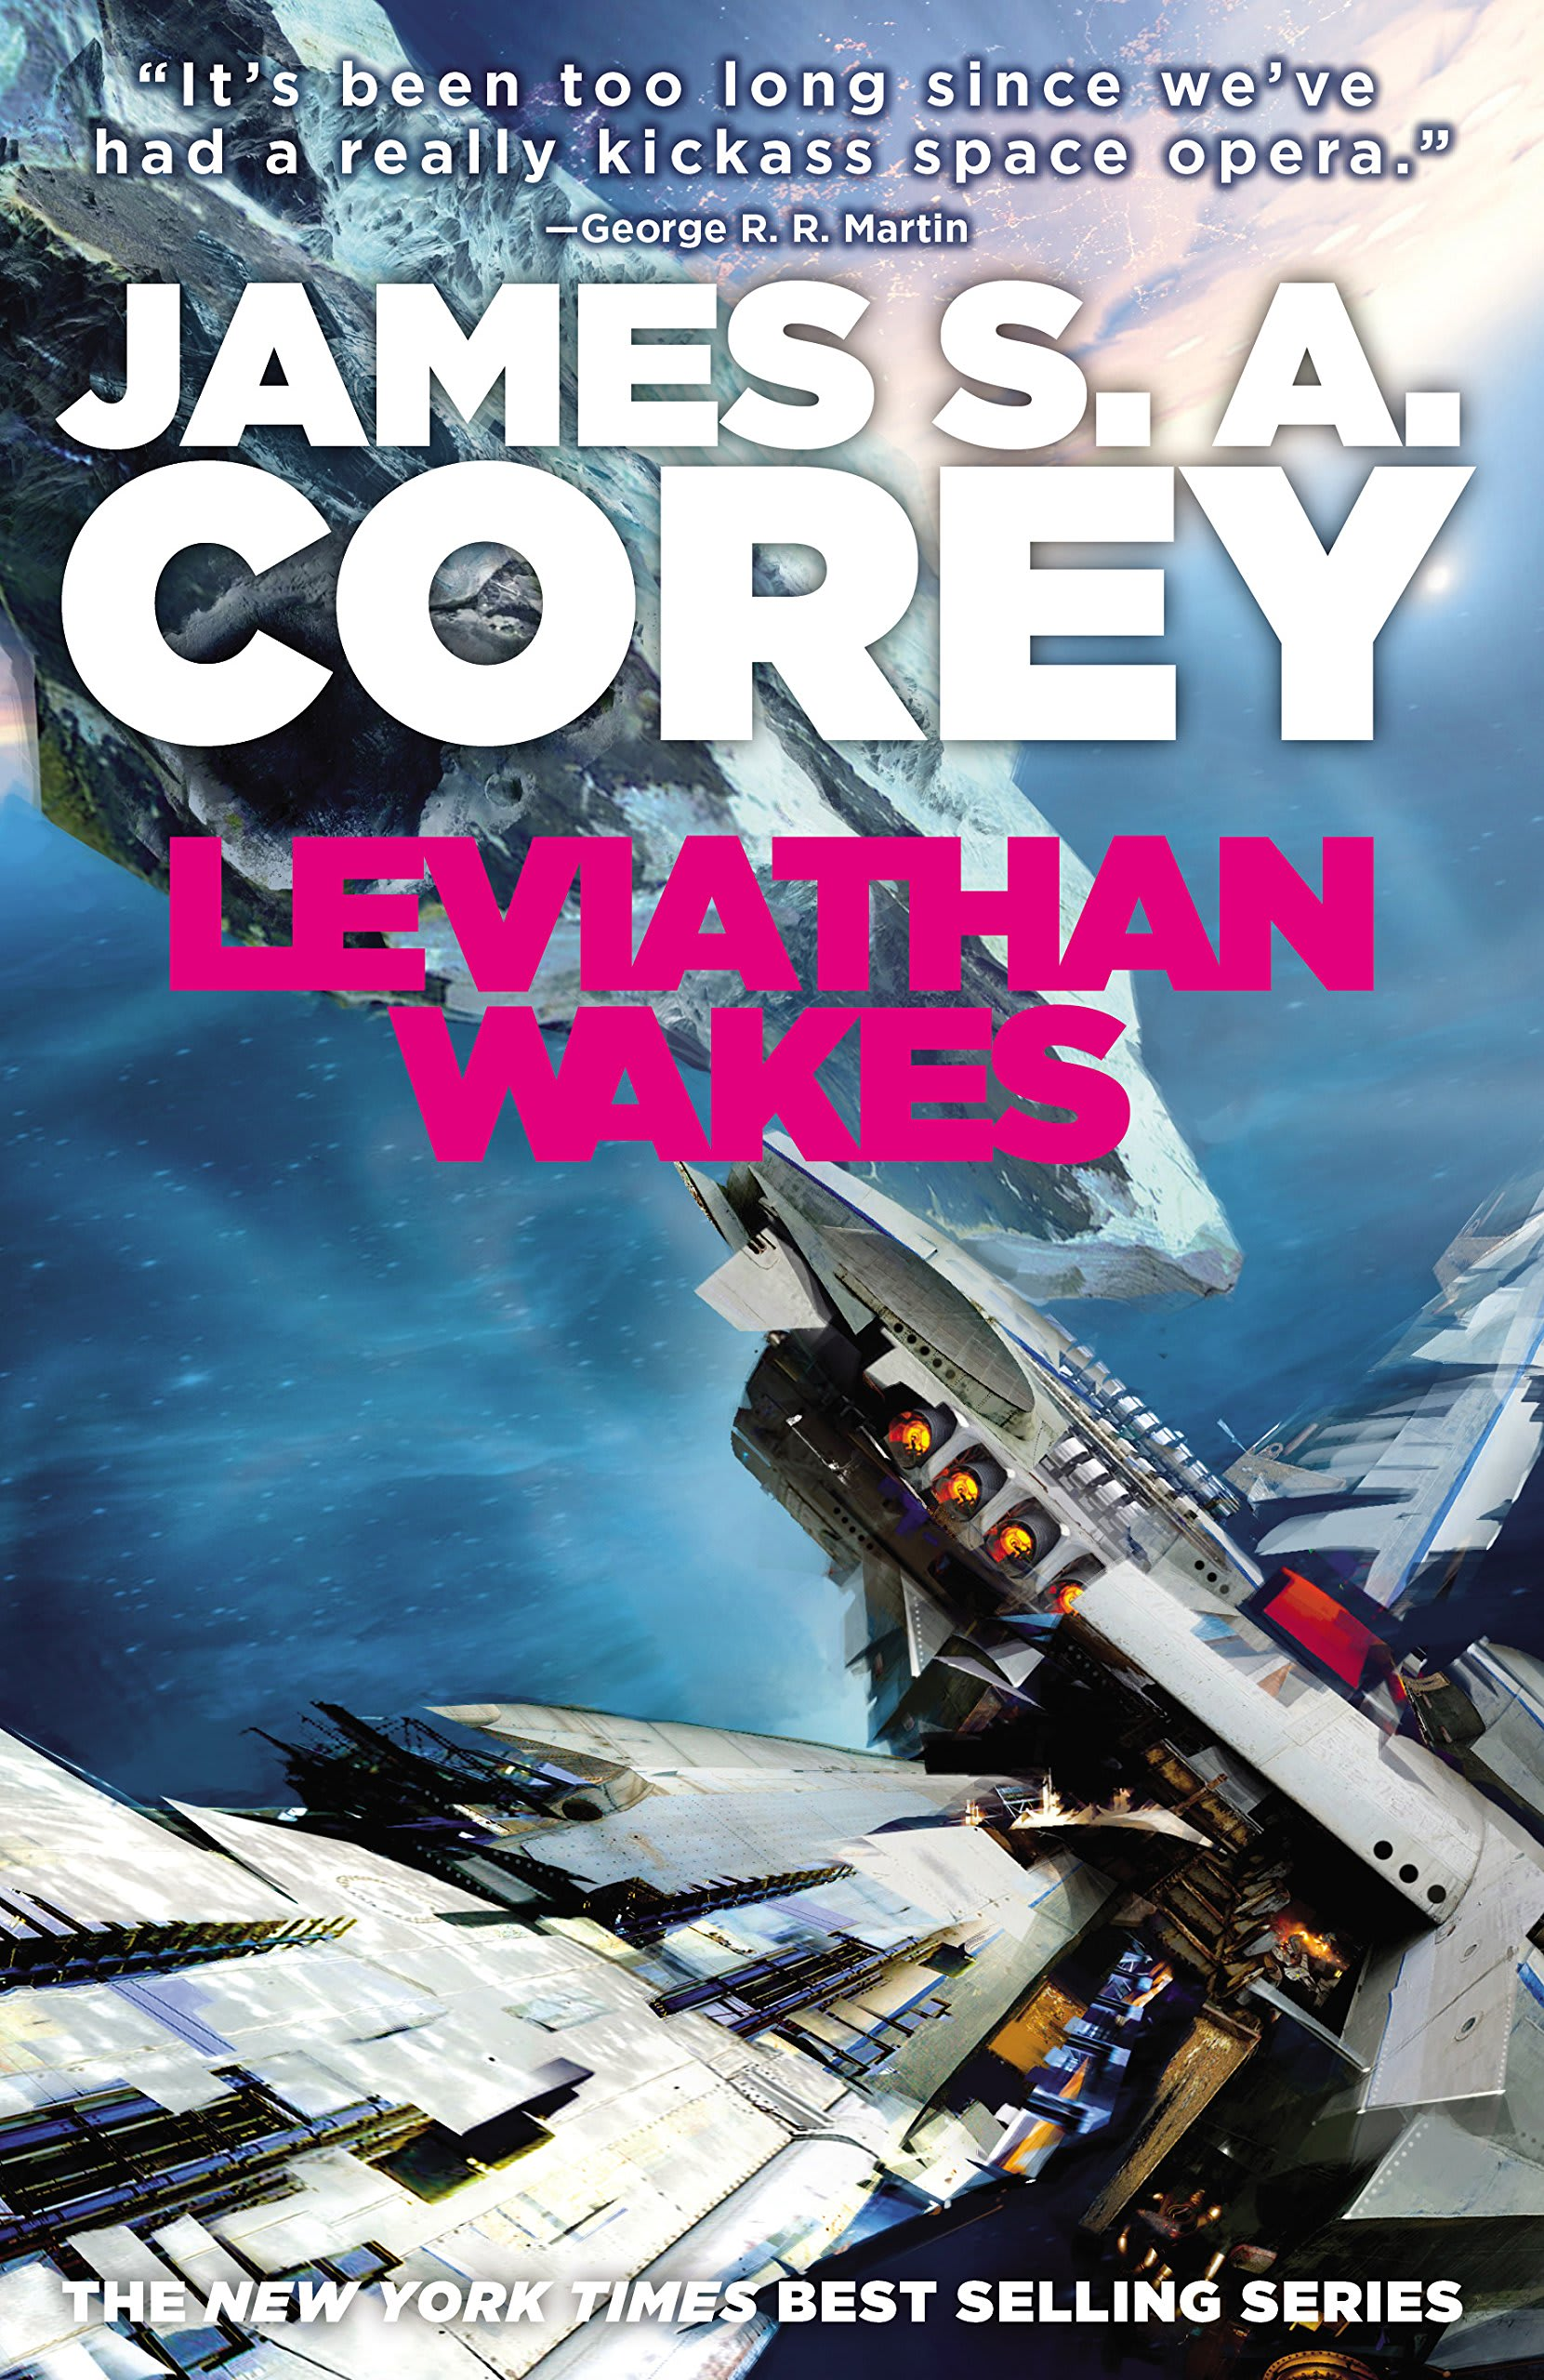 Discover Orbit's 'Leviathan Wakes' in The Expanse series by James S. A. Corey on Amazon.